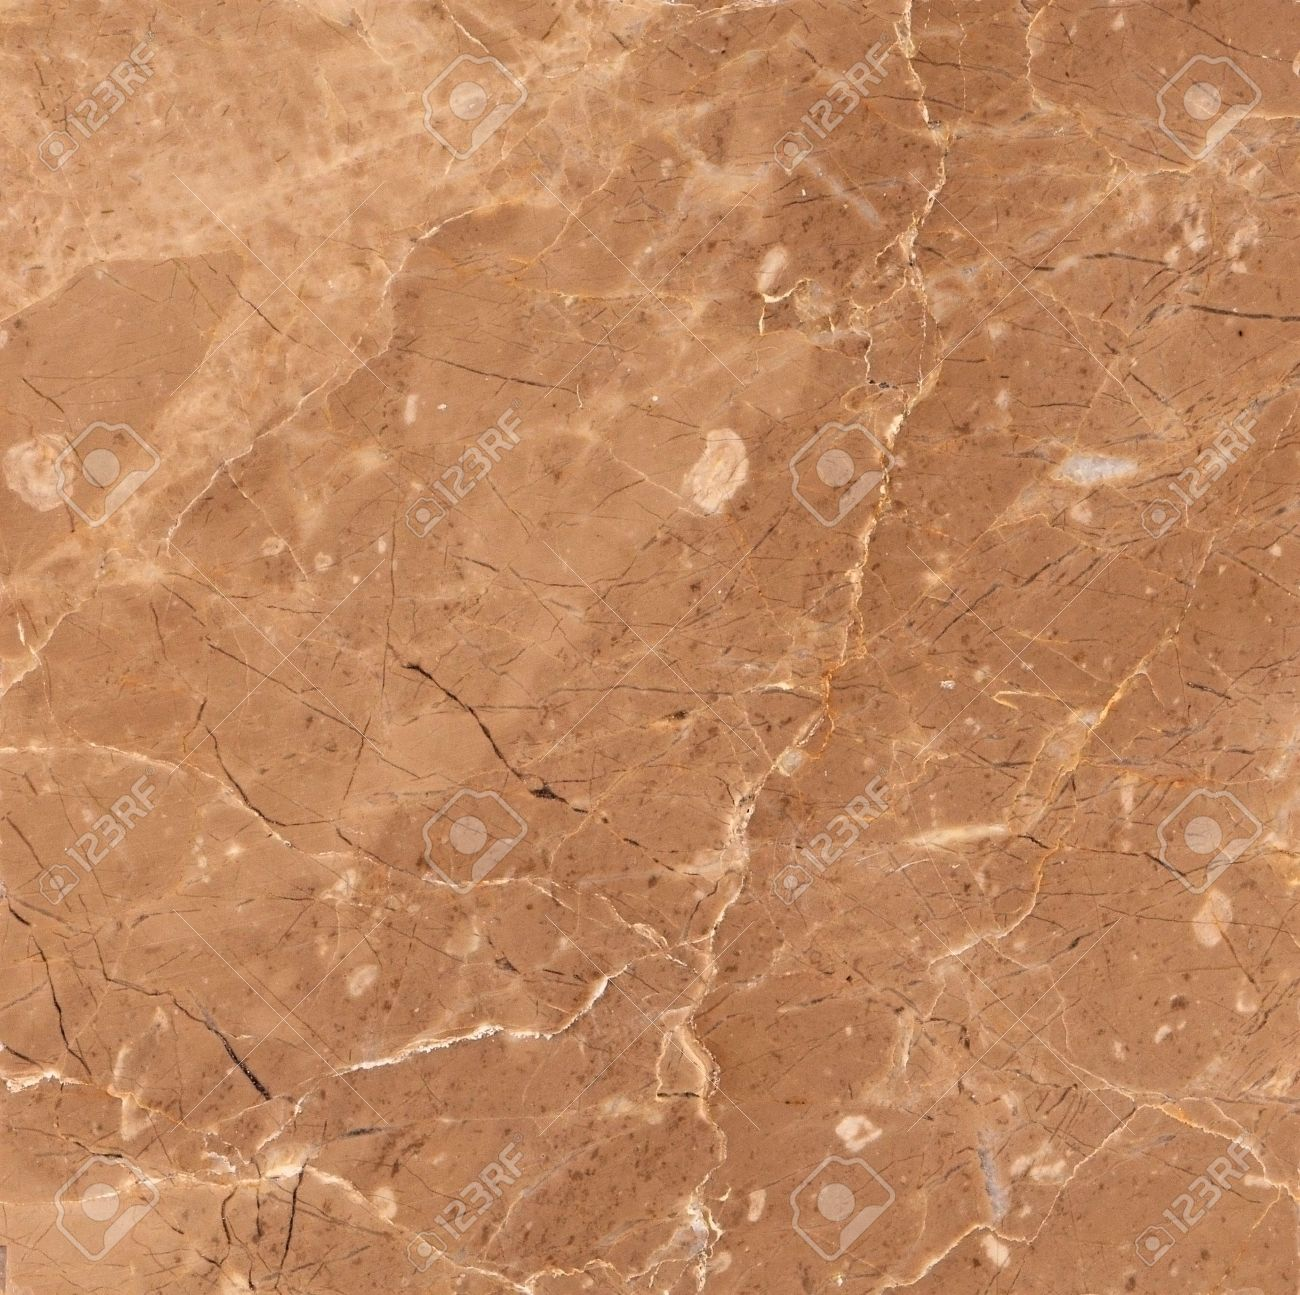 Brown Marble Texture High Resolution Stock Photo Picture And Royalty Free Image Image 8209191